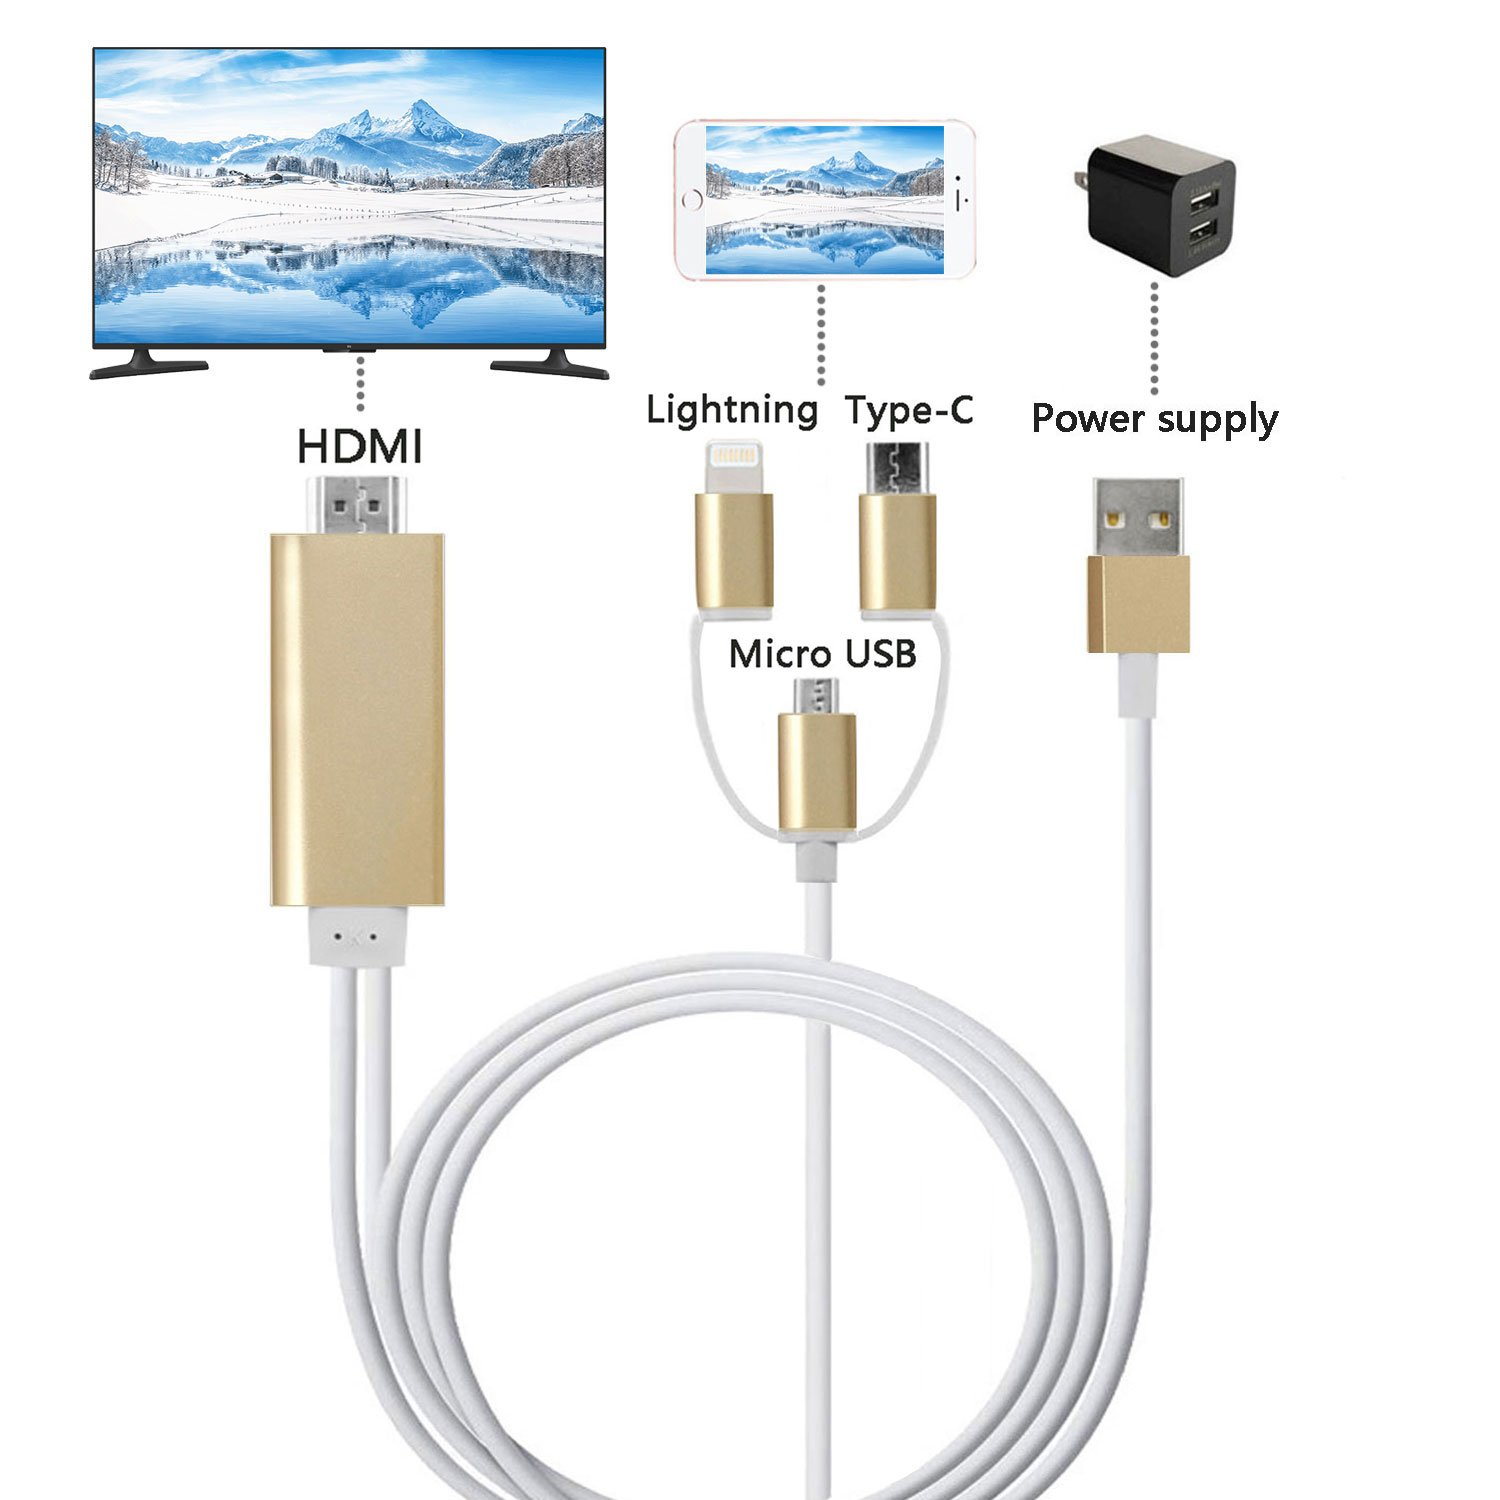 ZFKJERS 3 in 1 Lightning/Micro USB/Type-C to HDMI Cable, Mirror Mobile Phone Screen to TV/Projector/Monitor, 1080P HDTV Adapter for iPhone iPad and Android Phones (Gold)